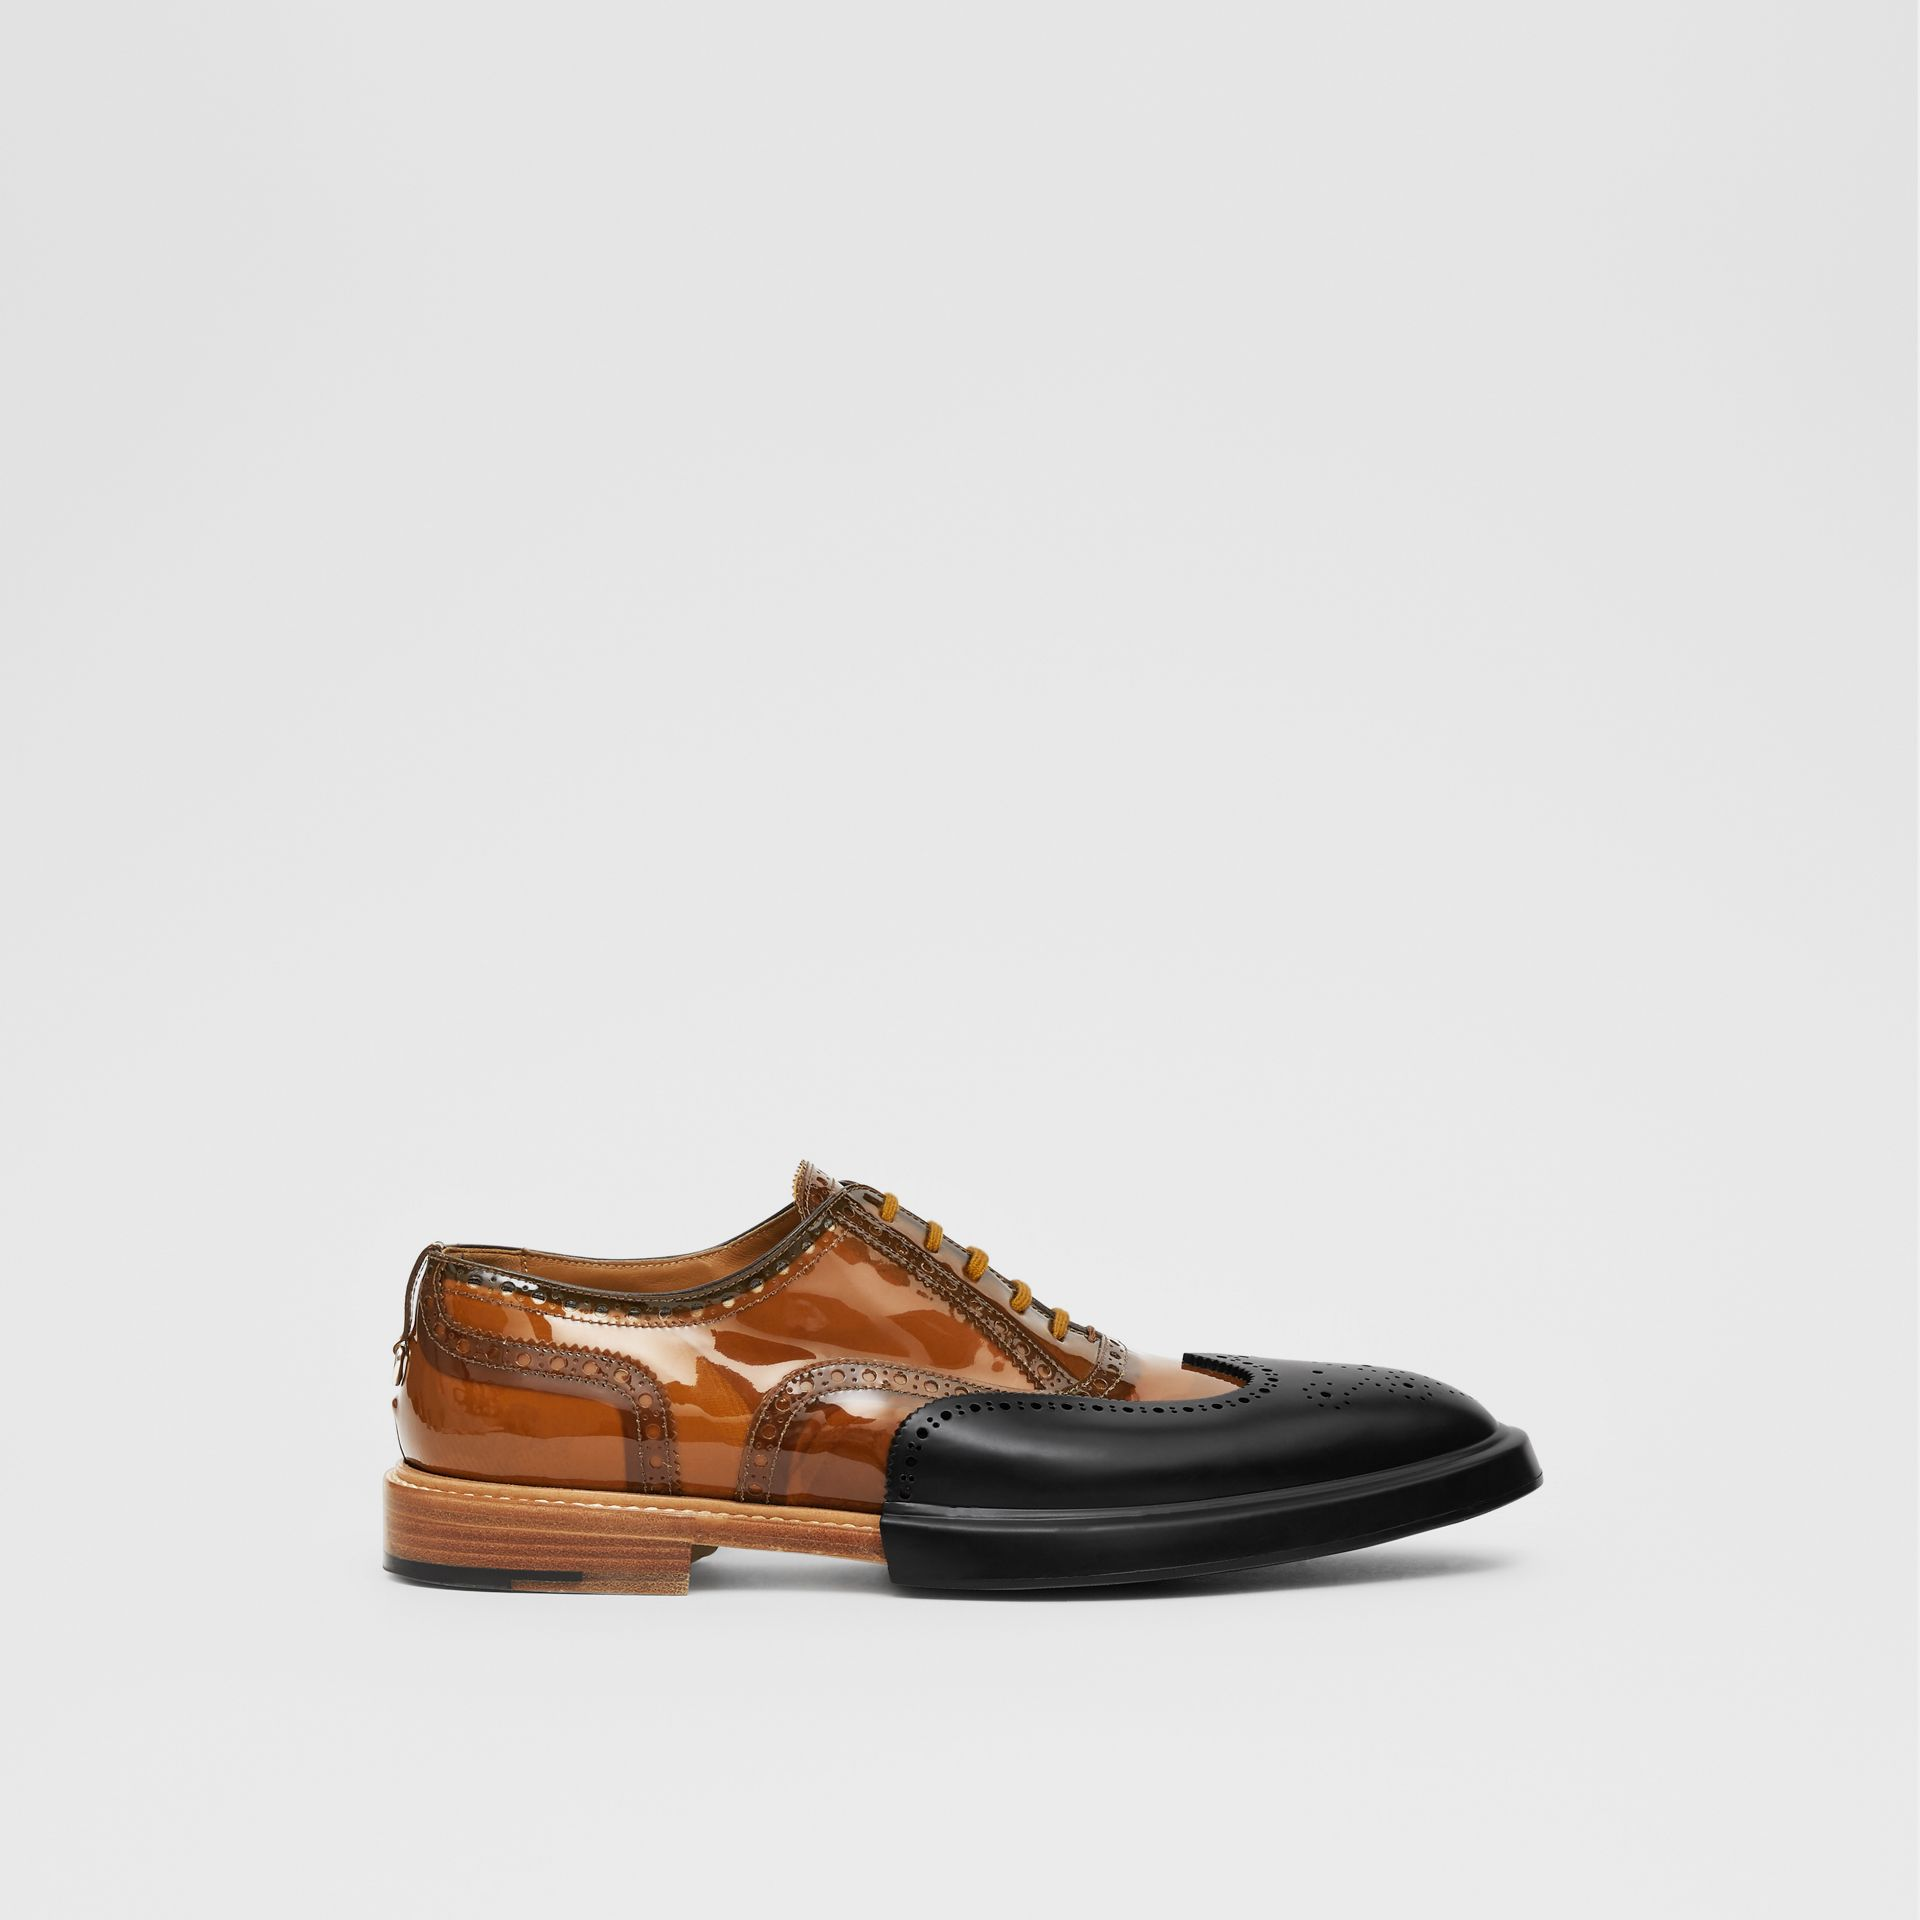 Toe Cap Detail Vinyl and Leather Oxford Brogues in Brown/black - Men | Burberry - gallery image 4